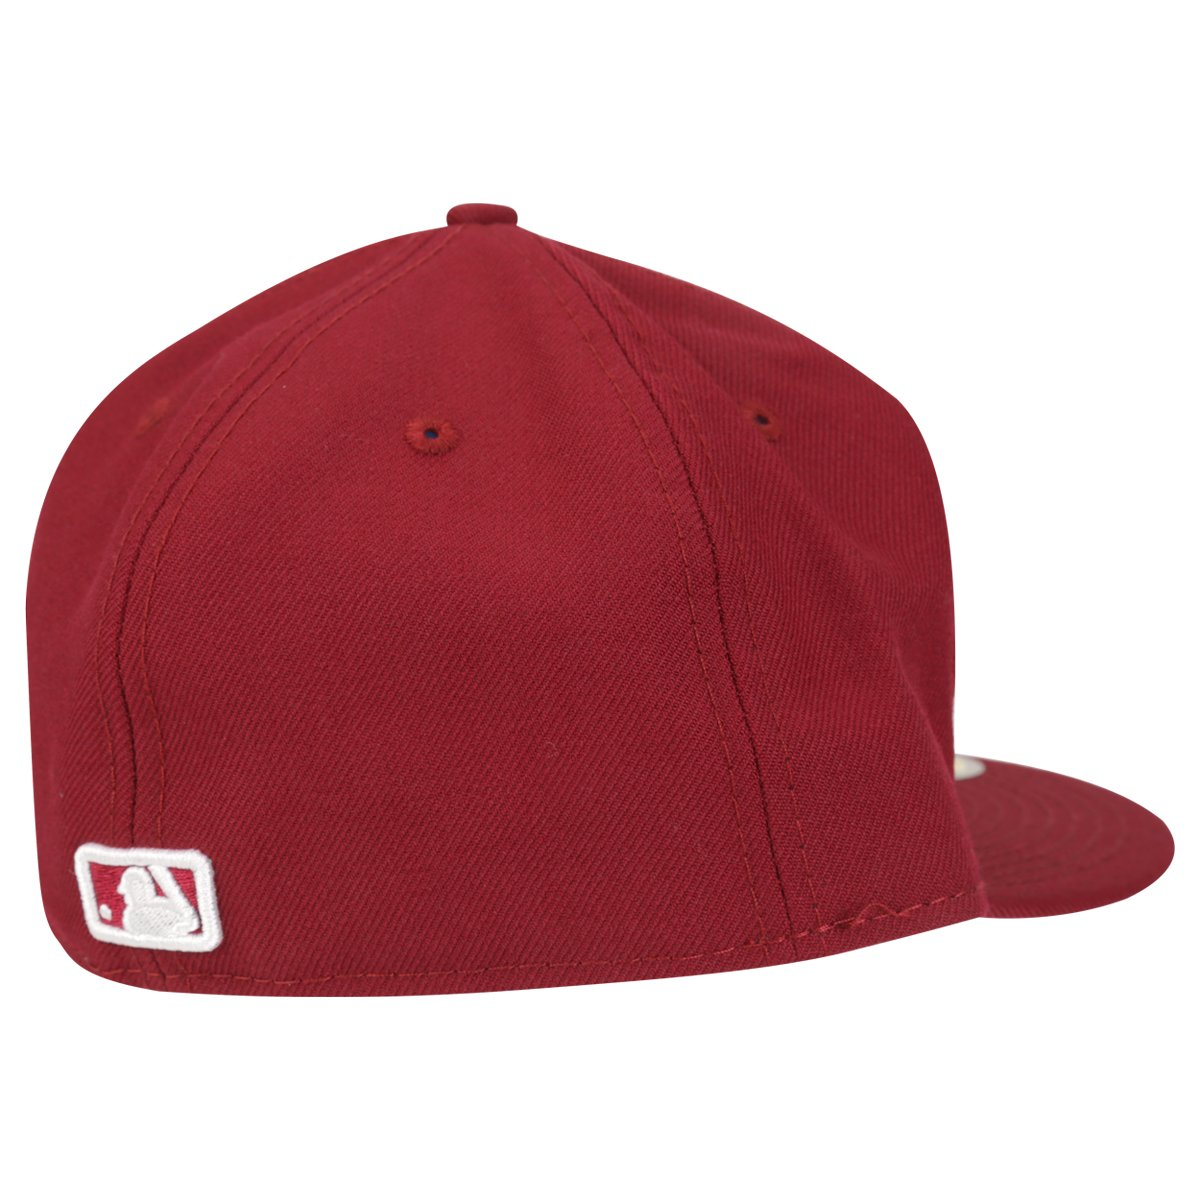 Boné New Era 5950 MLB Basic Colors Boston Red Sox - Compre Agora ... 6071eb468be